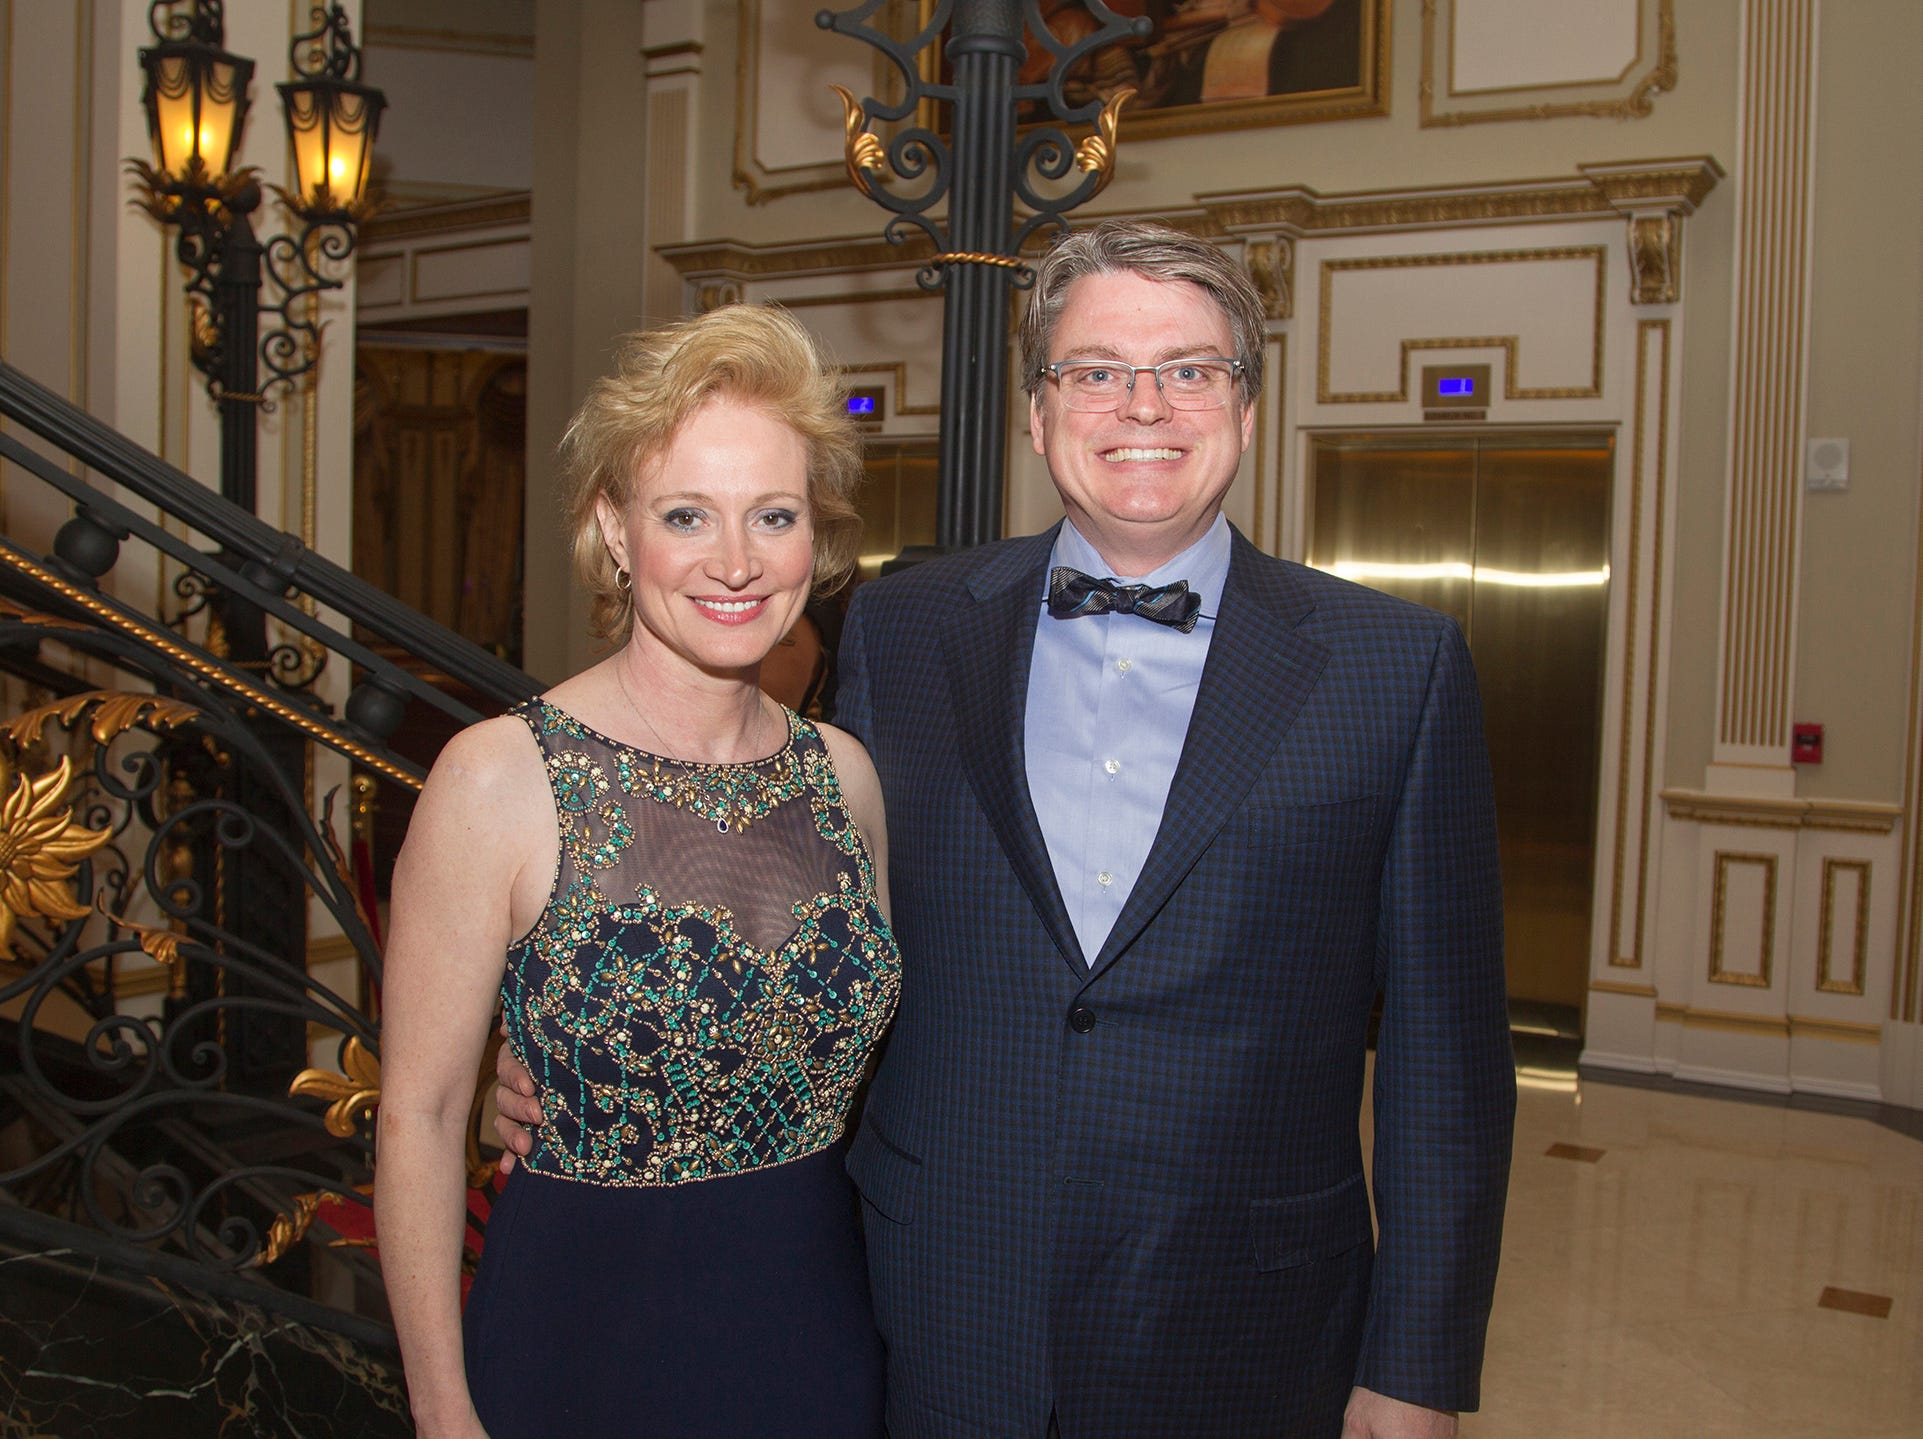 Lisa and Keith Docker. The 72nd Annual Valley Ball gala at The Legacy Castle in Pompton Plains. 11/16/2018